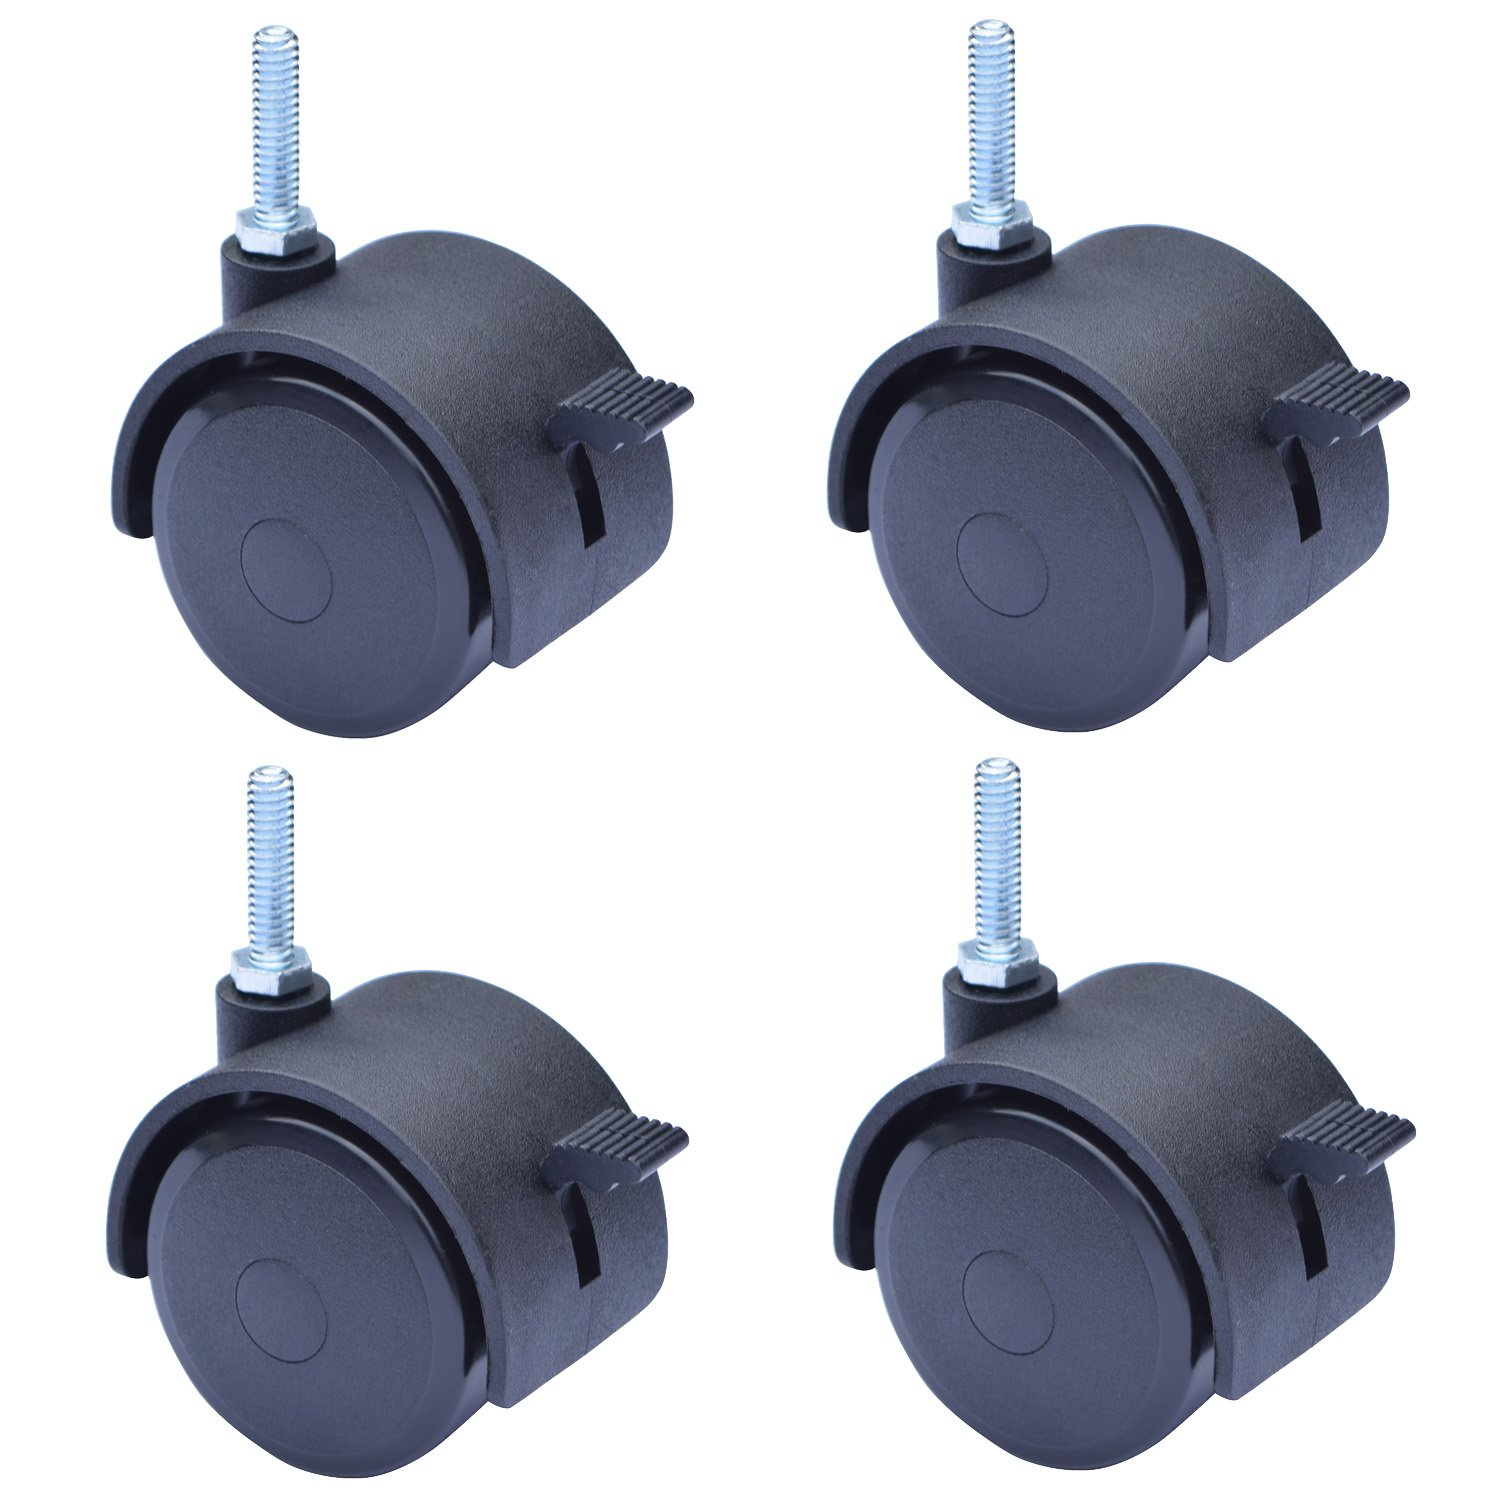 MySit 2 Caster Swivel Stem Caster Wheel with Locking Brake 1 4 20 x 1 Pack of 4 CasterBrake50 6x25